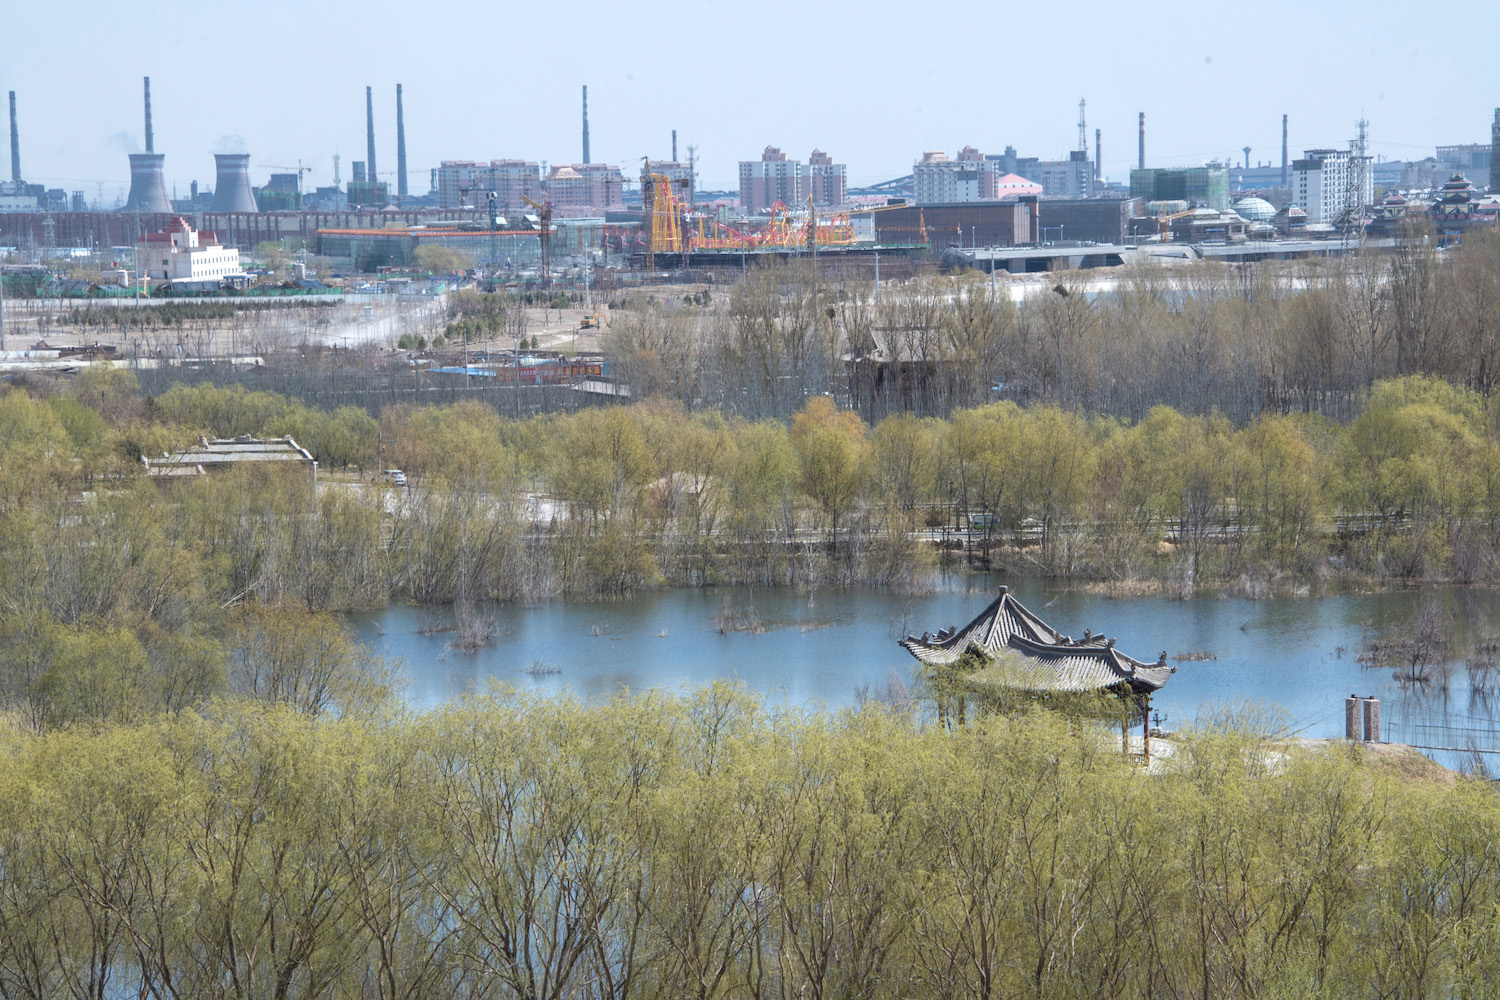 Industrial scene in Gansu, China